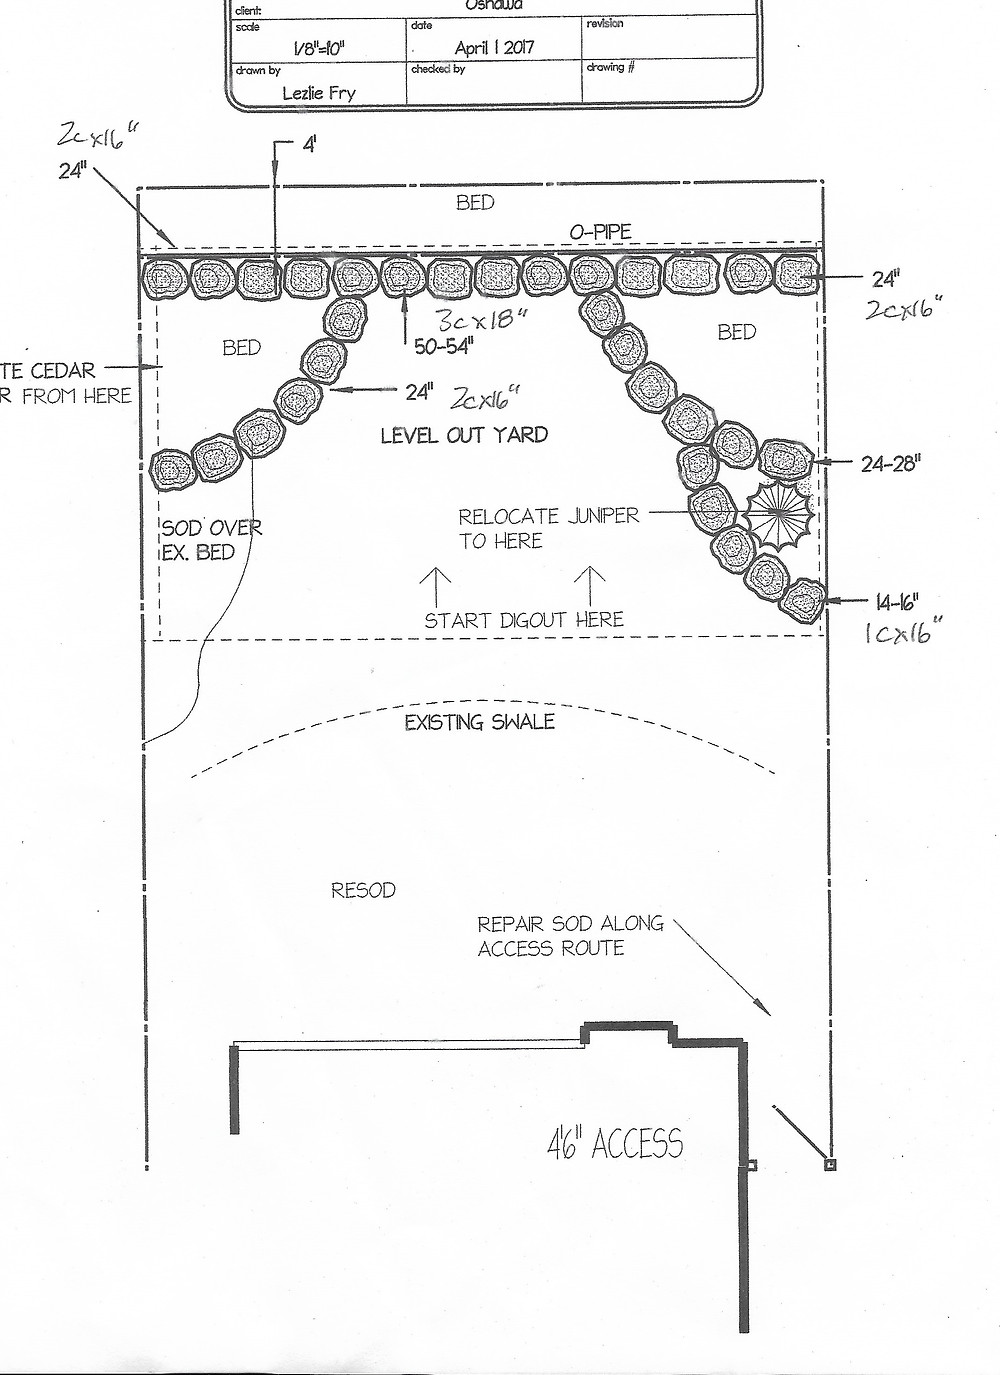 Landscape design presentation of a natural stone retaining wall